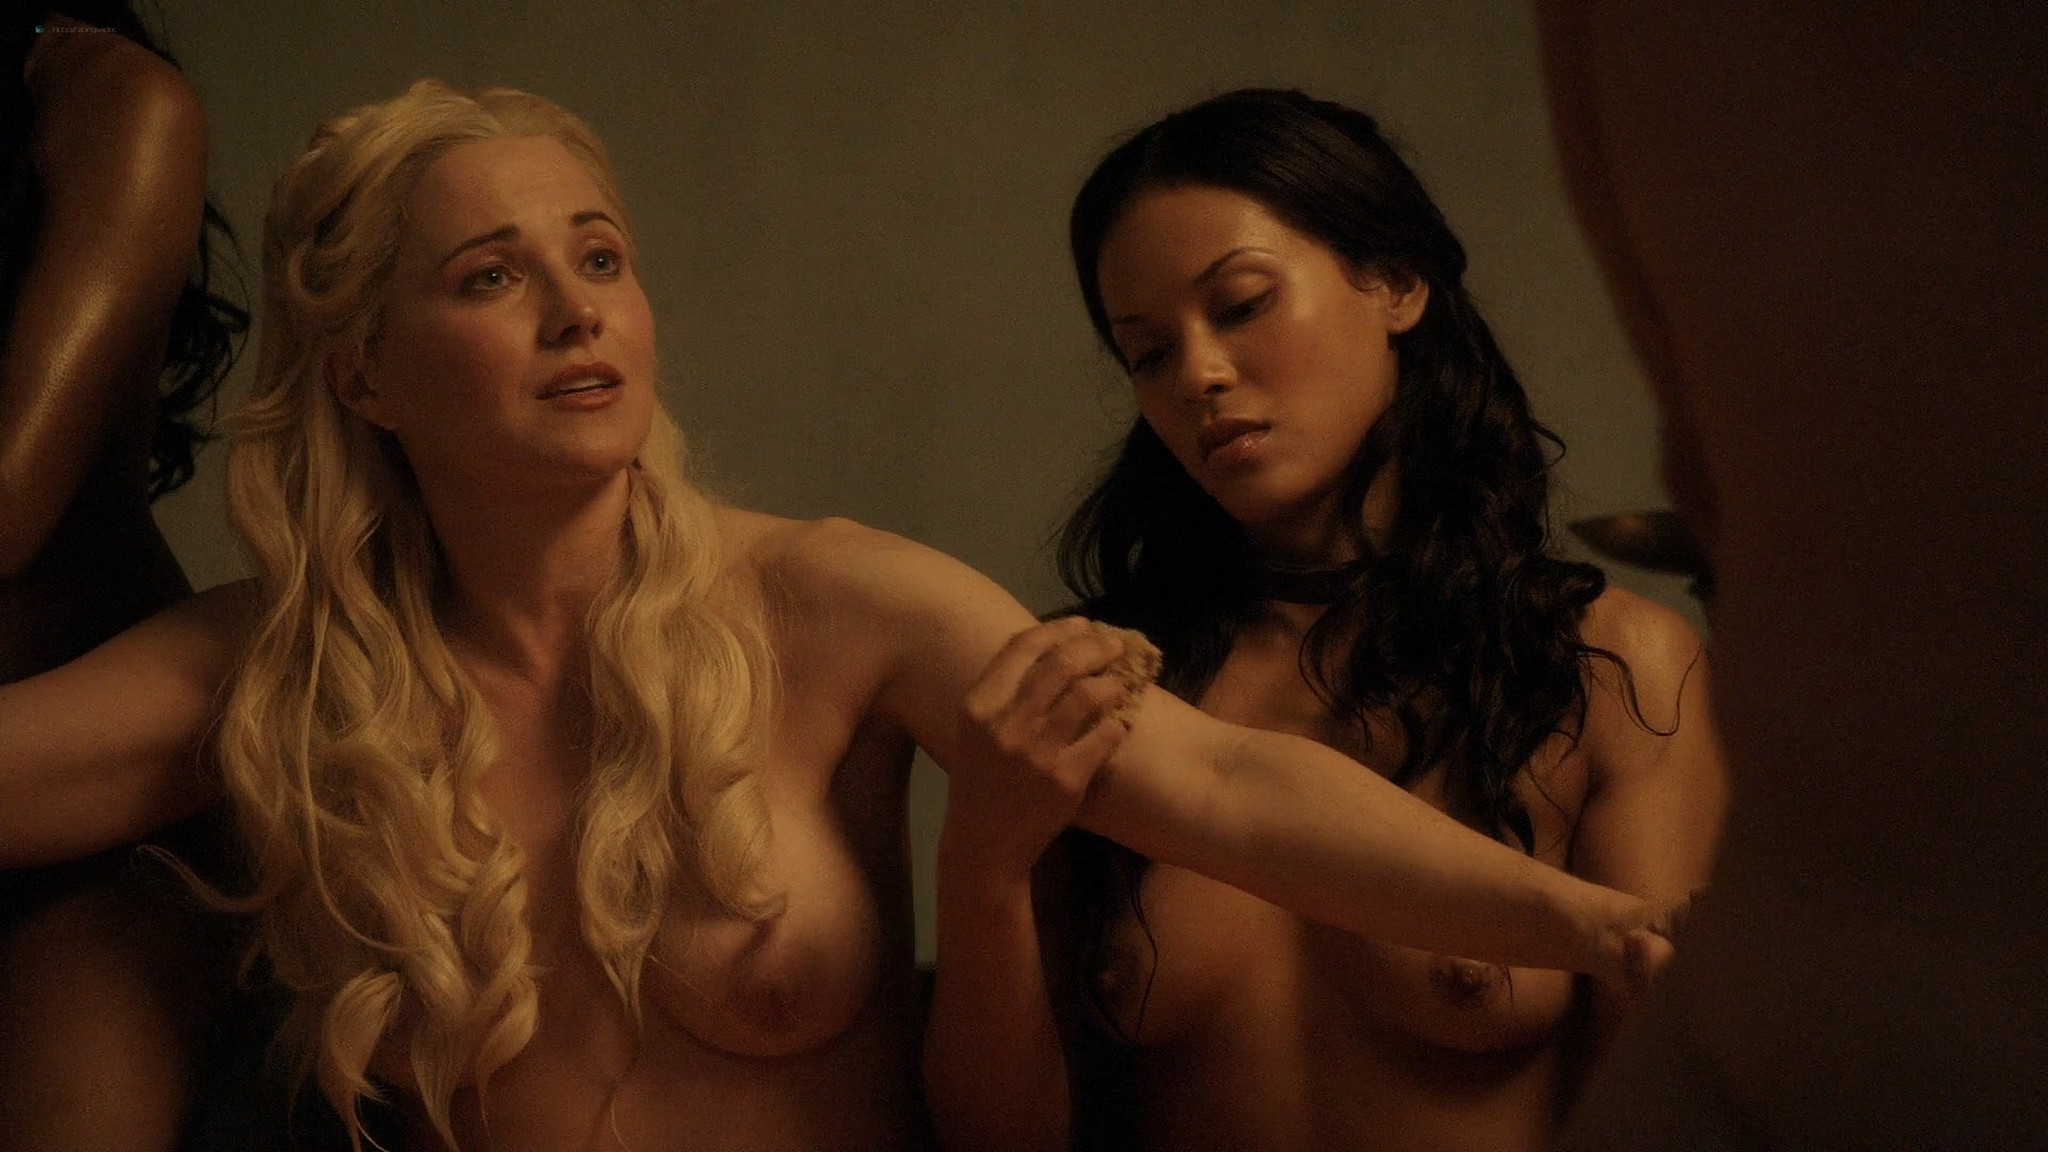 Lucy Lawless nude Lesley-Ann Brandt and other nude sex too - Spartacus (2010) Delicate Things s1e6 HD 1080p BluRay (10)